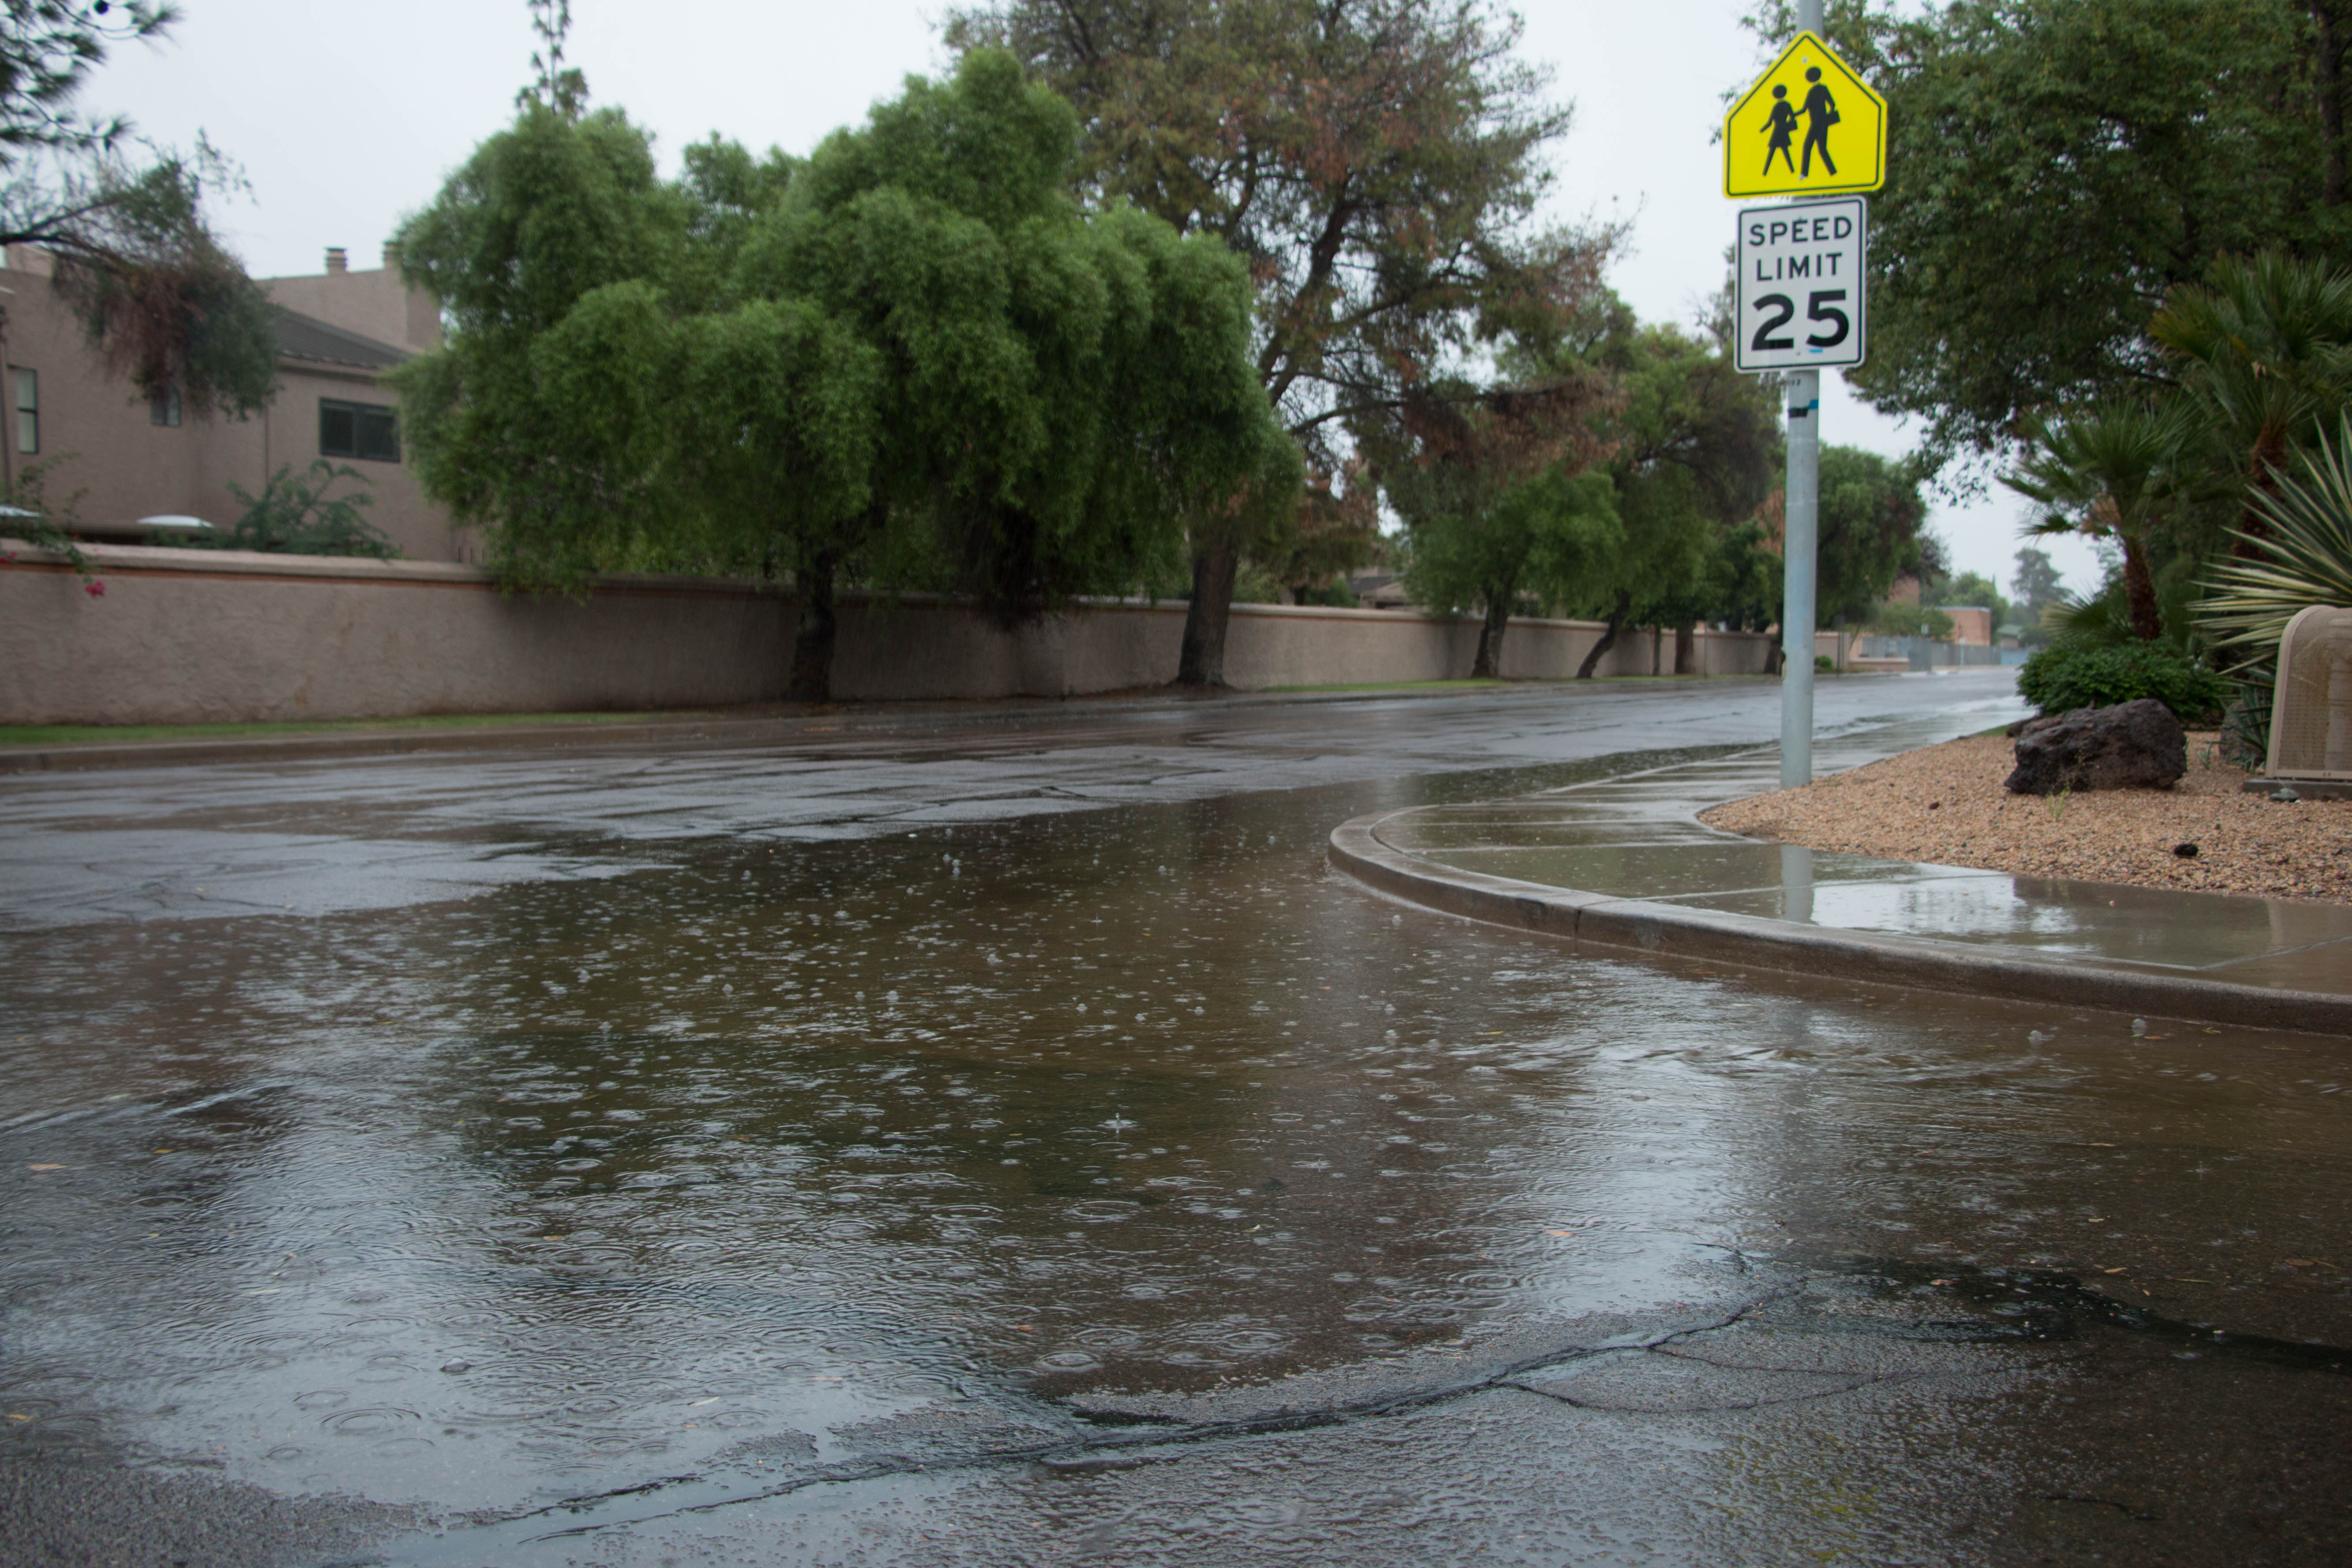 October seizes record of second wettest month for Phoenix – and we're only two weeks in | Arizona Central